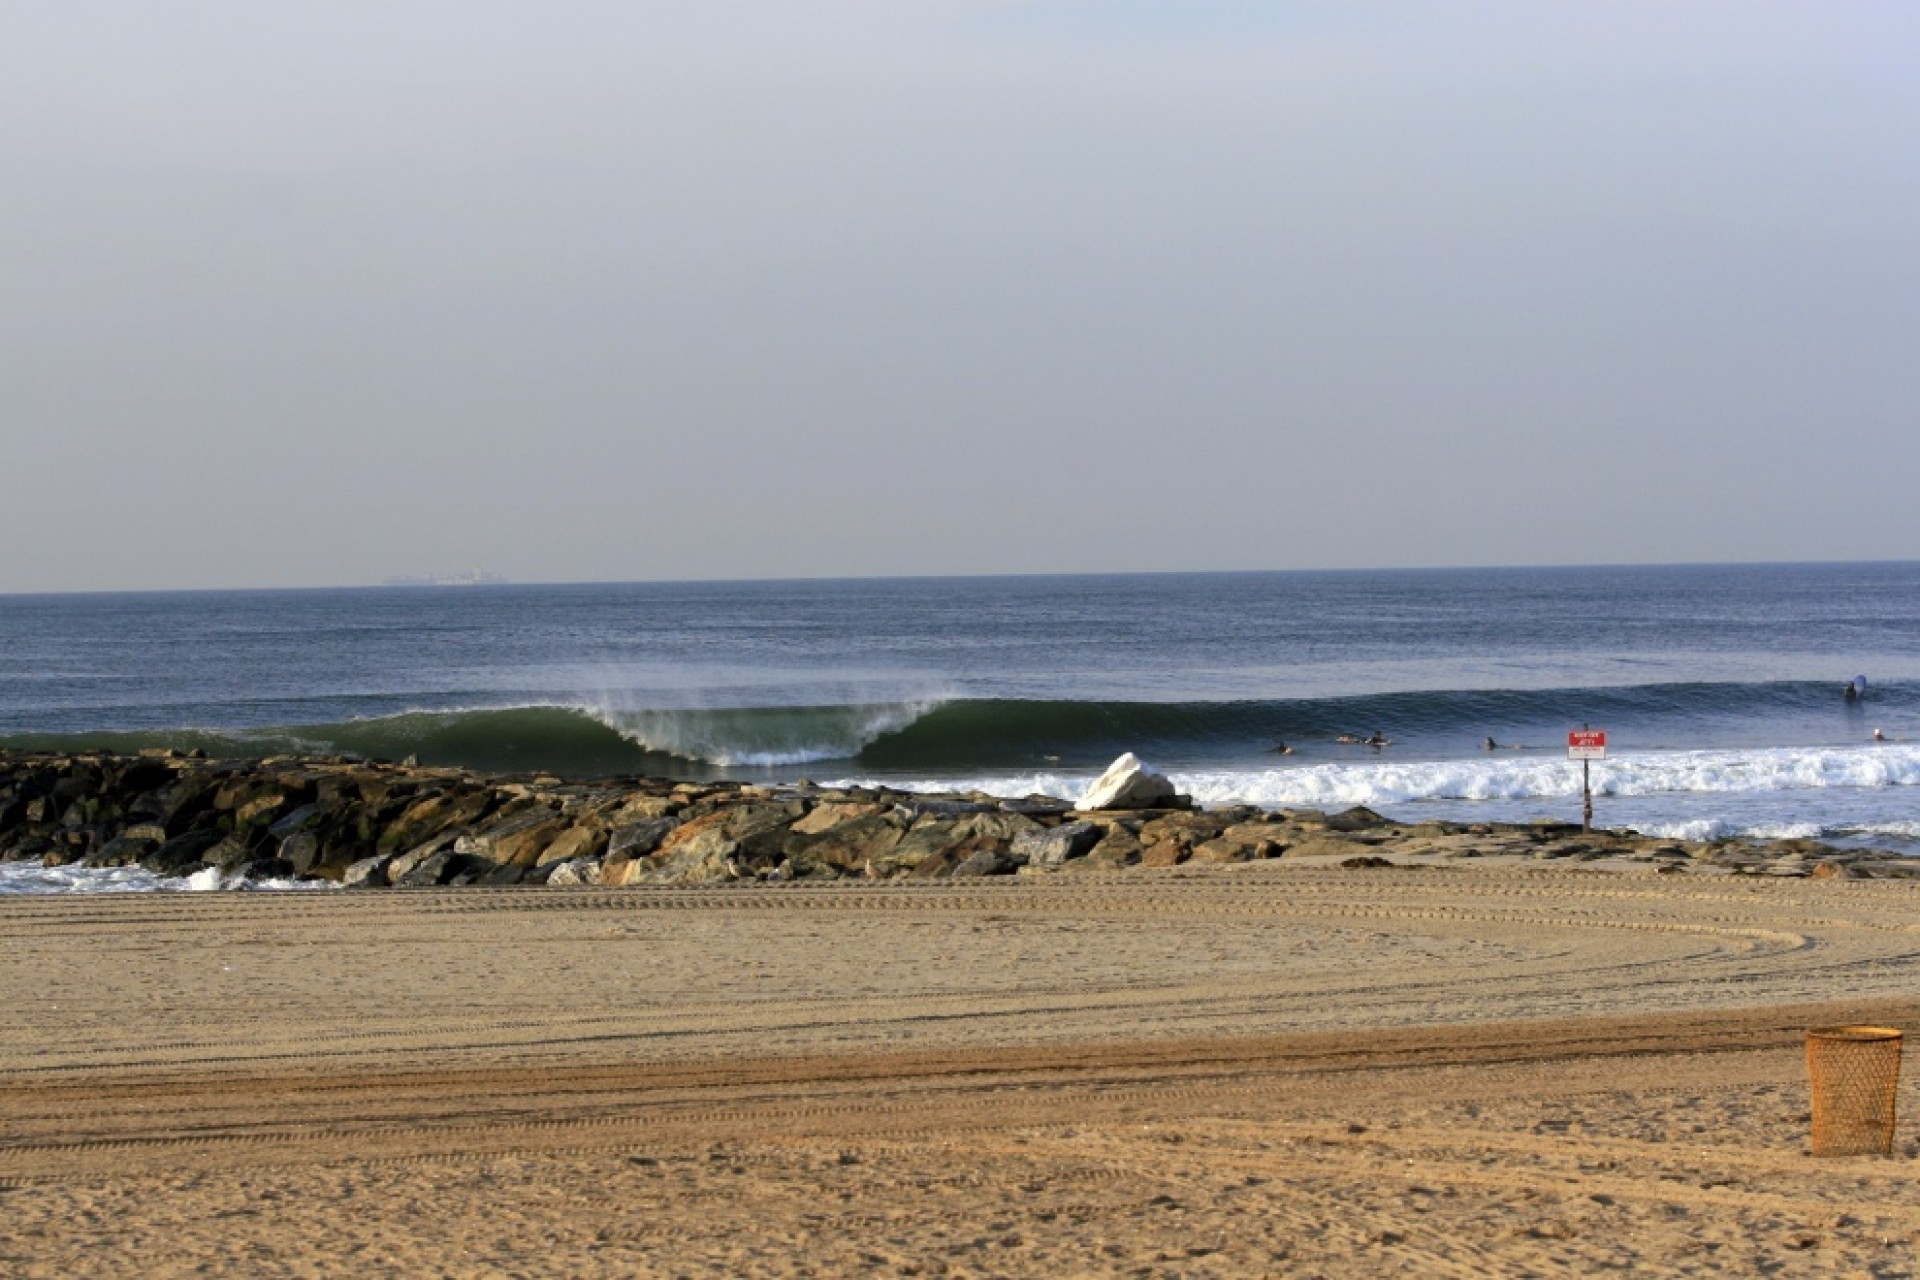 nycwatershots's photo of Rockaway